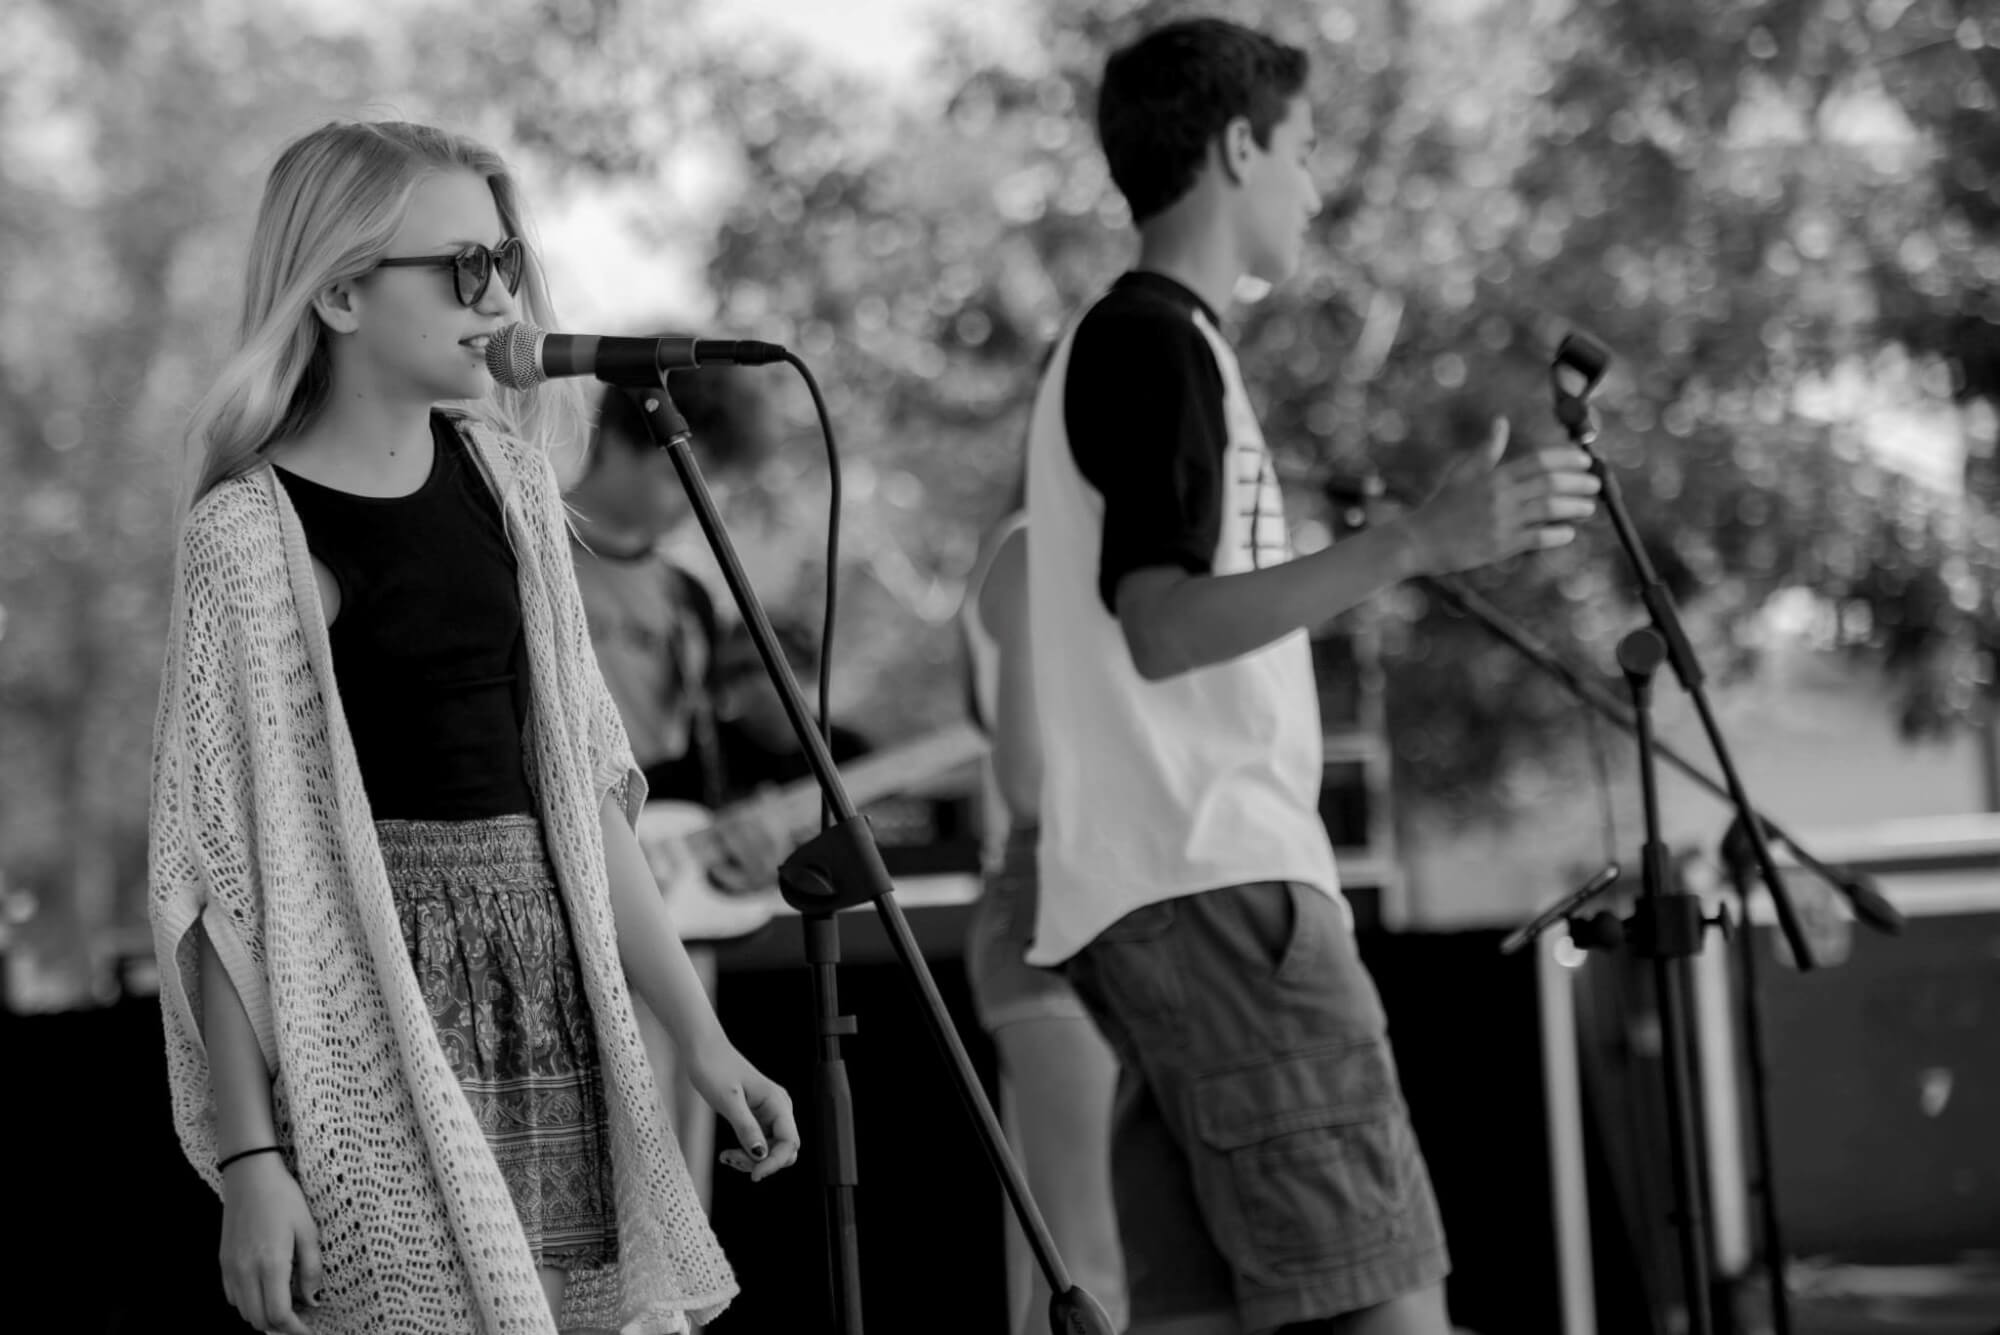 Playing a gig in Fort Lauderdale at Esplanade Park.